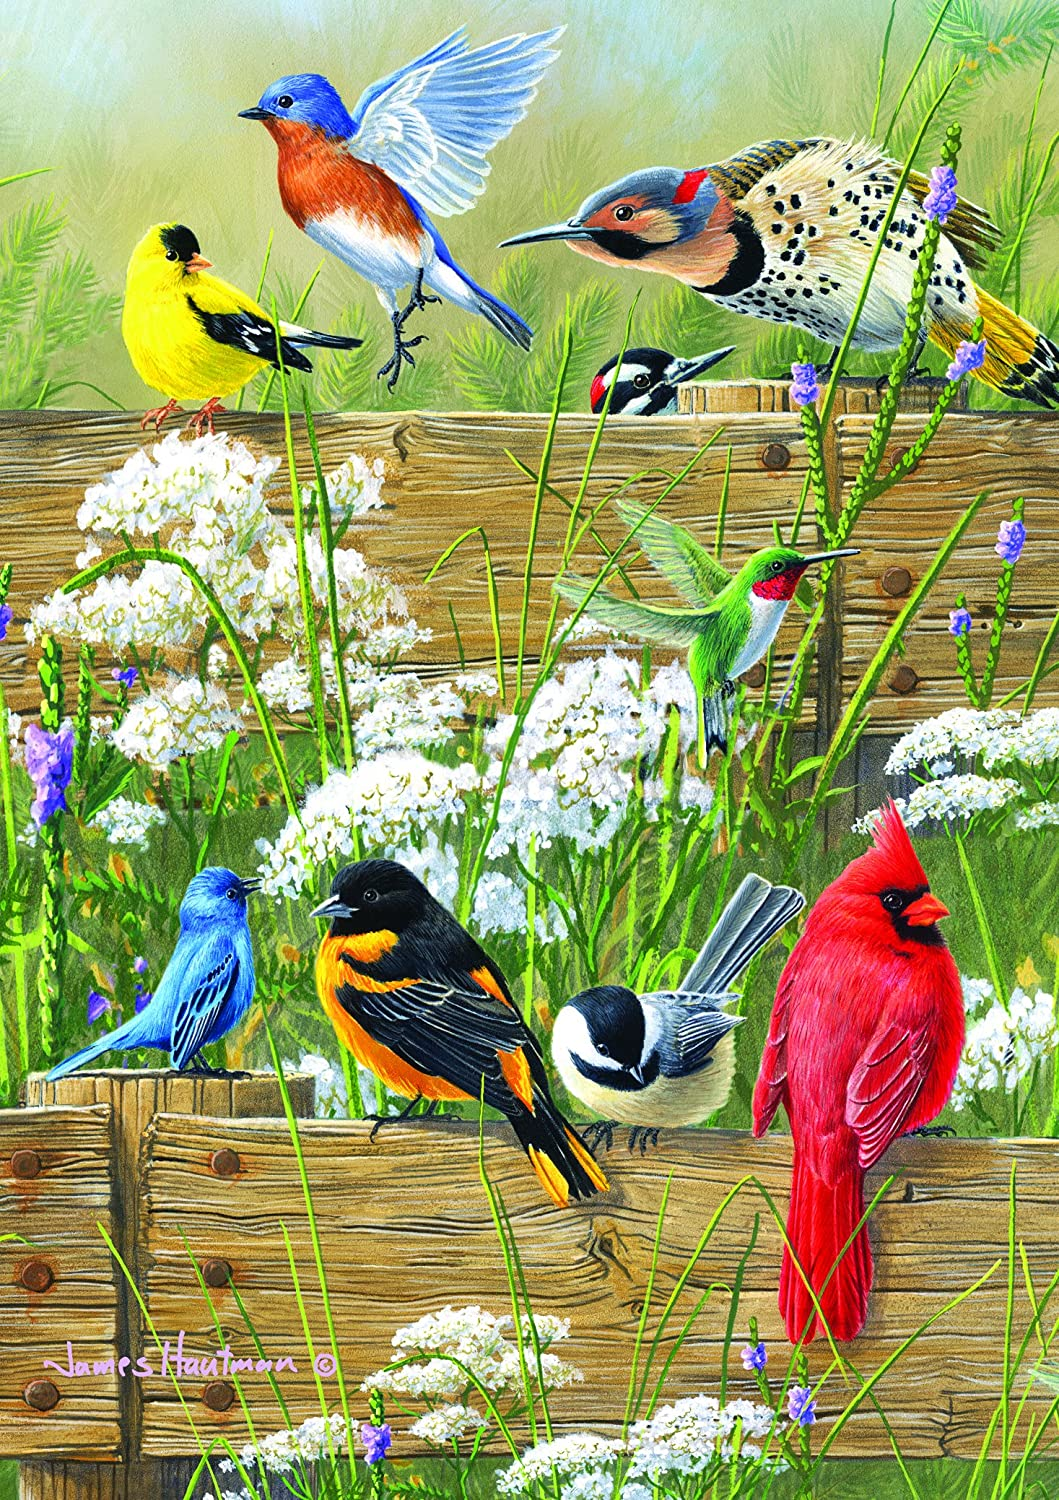 Buffalo Games Large Piece Songbird Menagerie 300 Jigsaw Puzzle